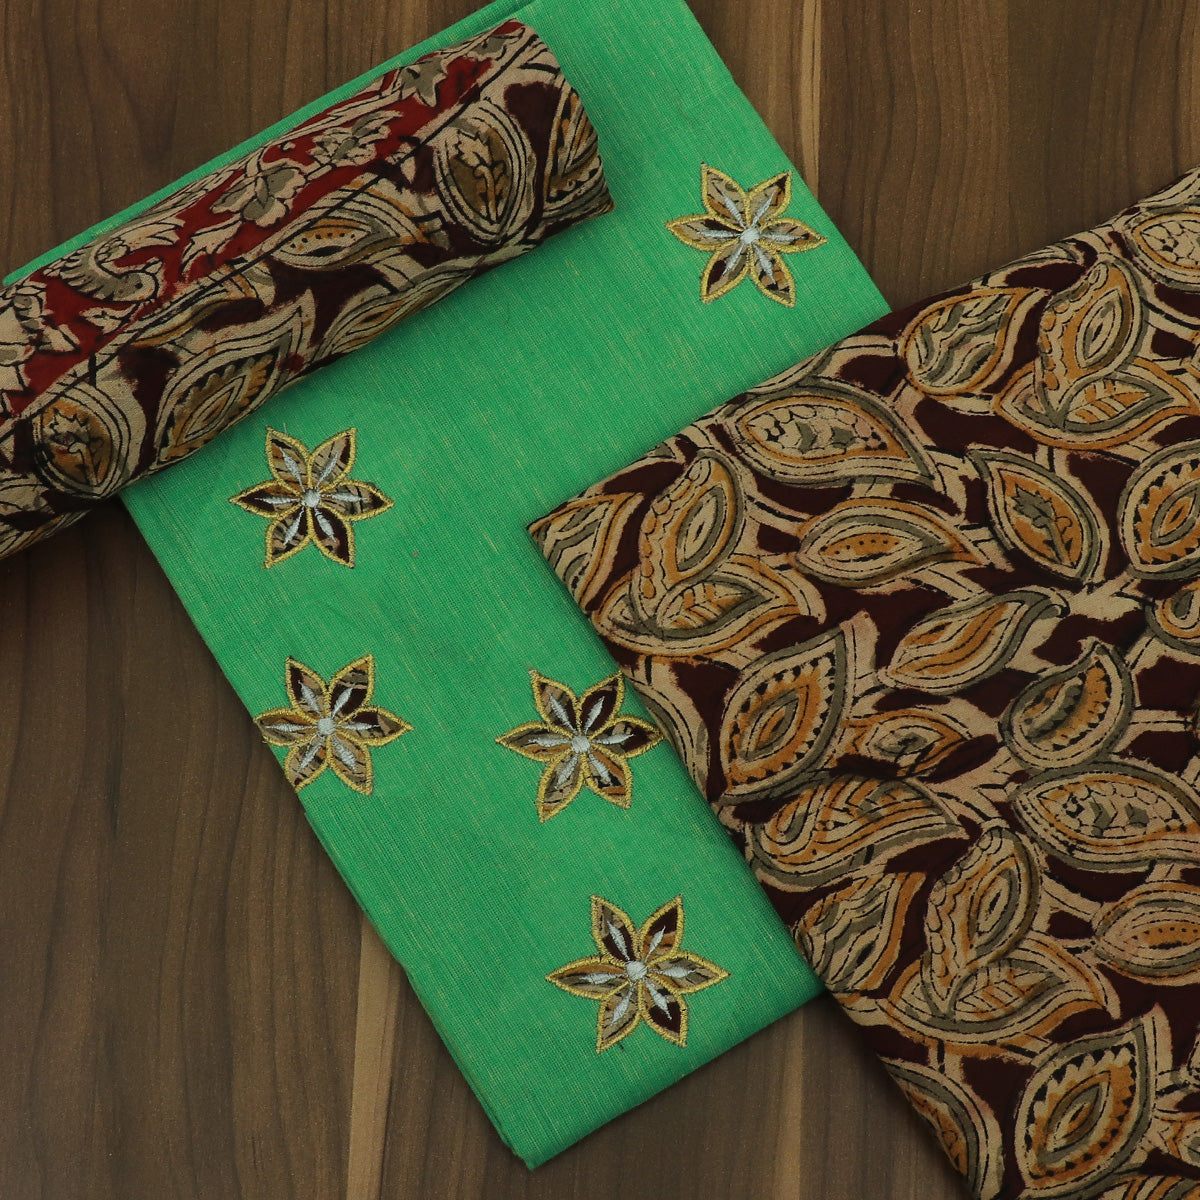 Dress Material - Green and half white Maroon with Batik applique work